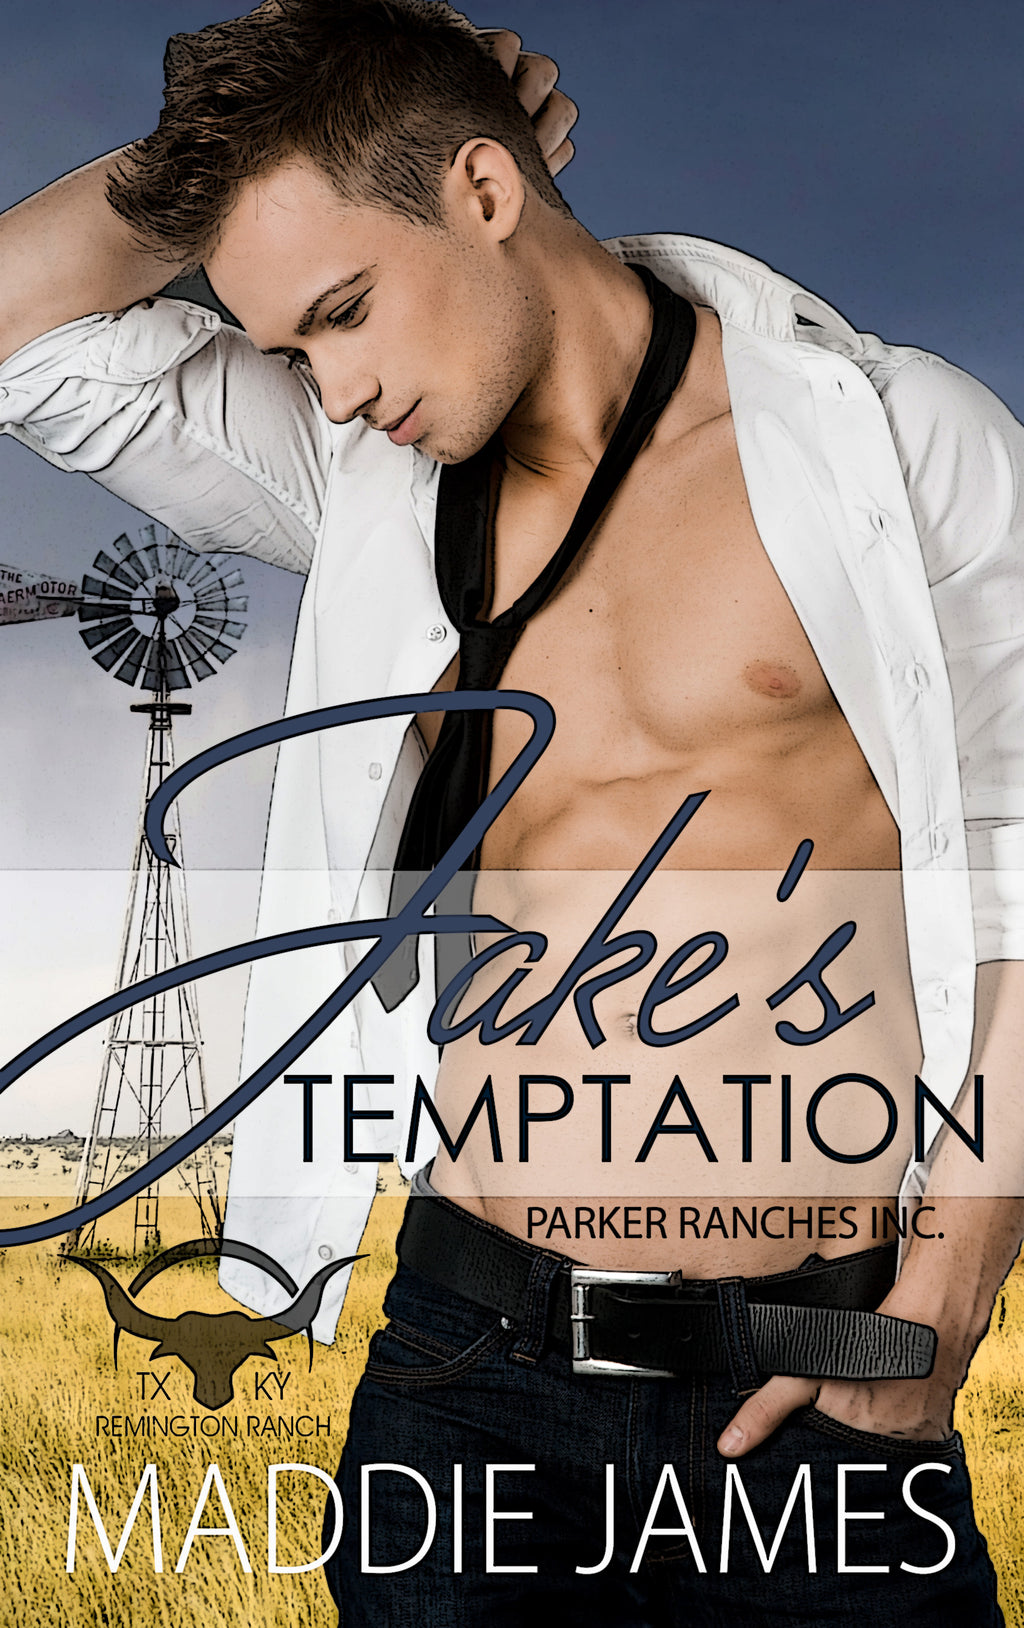 Jake's Temptation (Parker Ranches, Inc. - Remington Ranch, Texas) Book 3